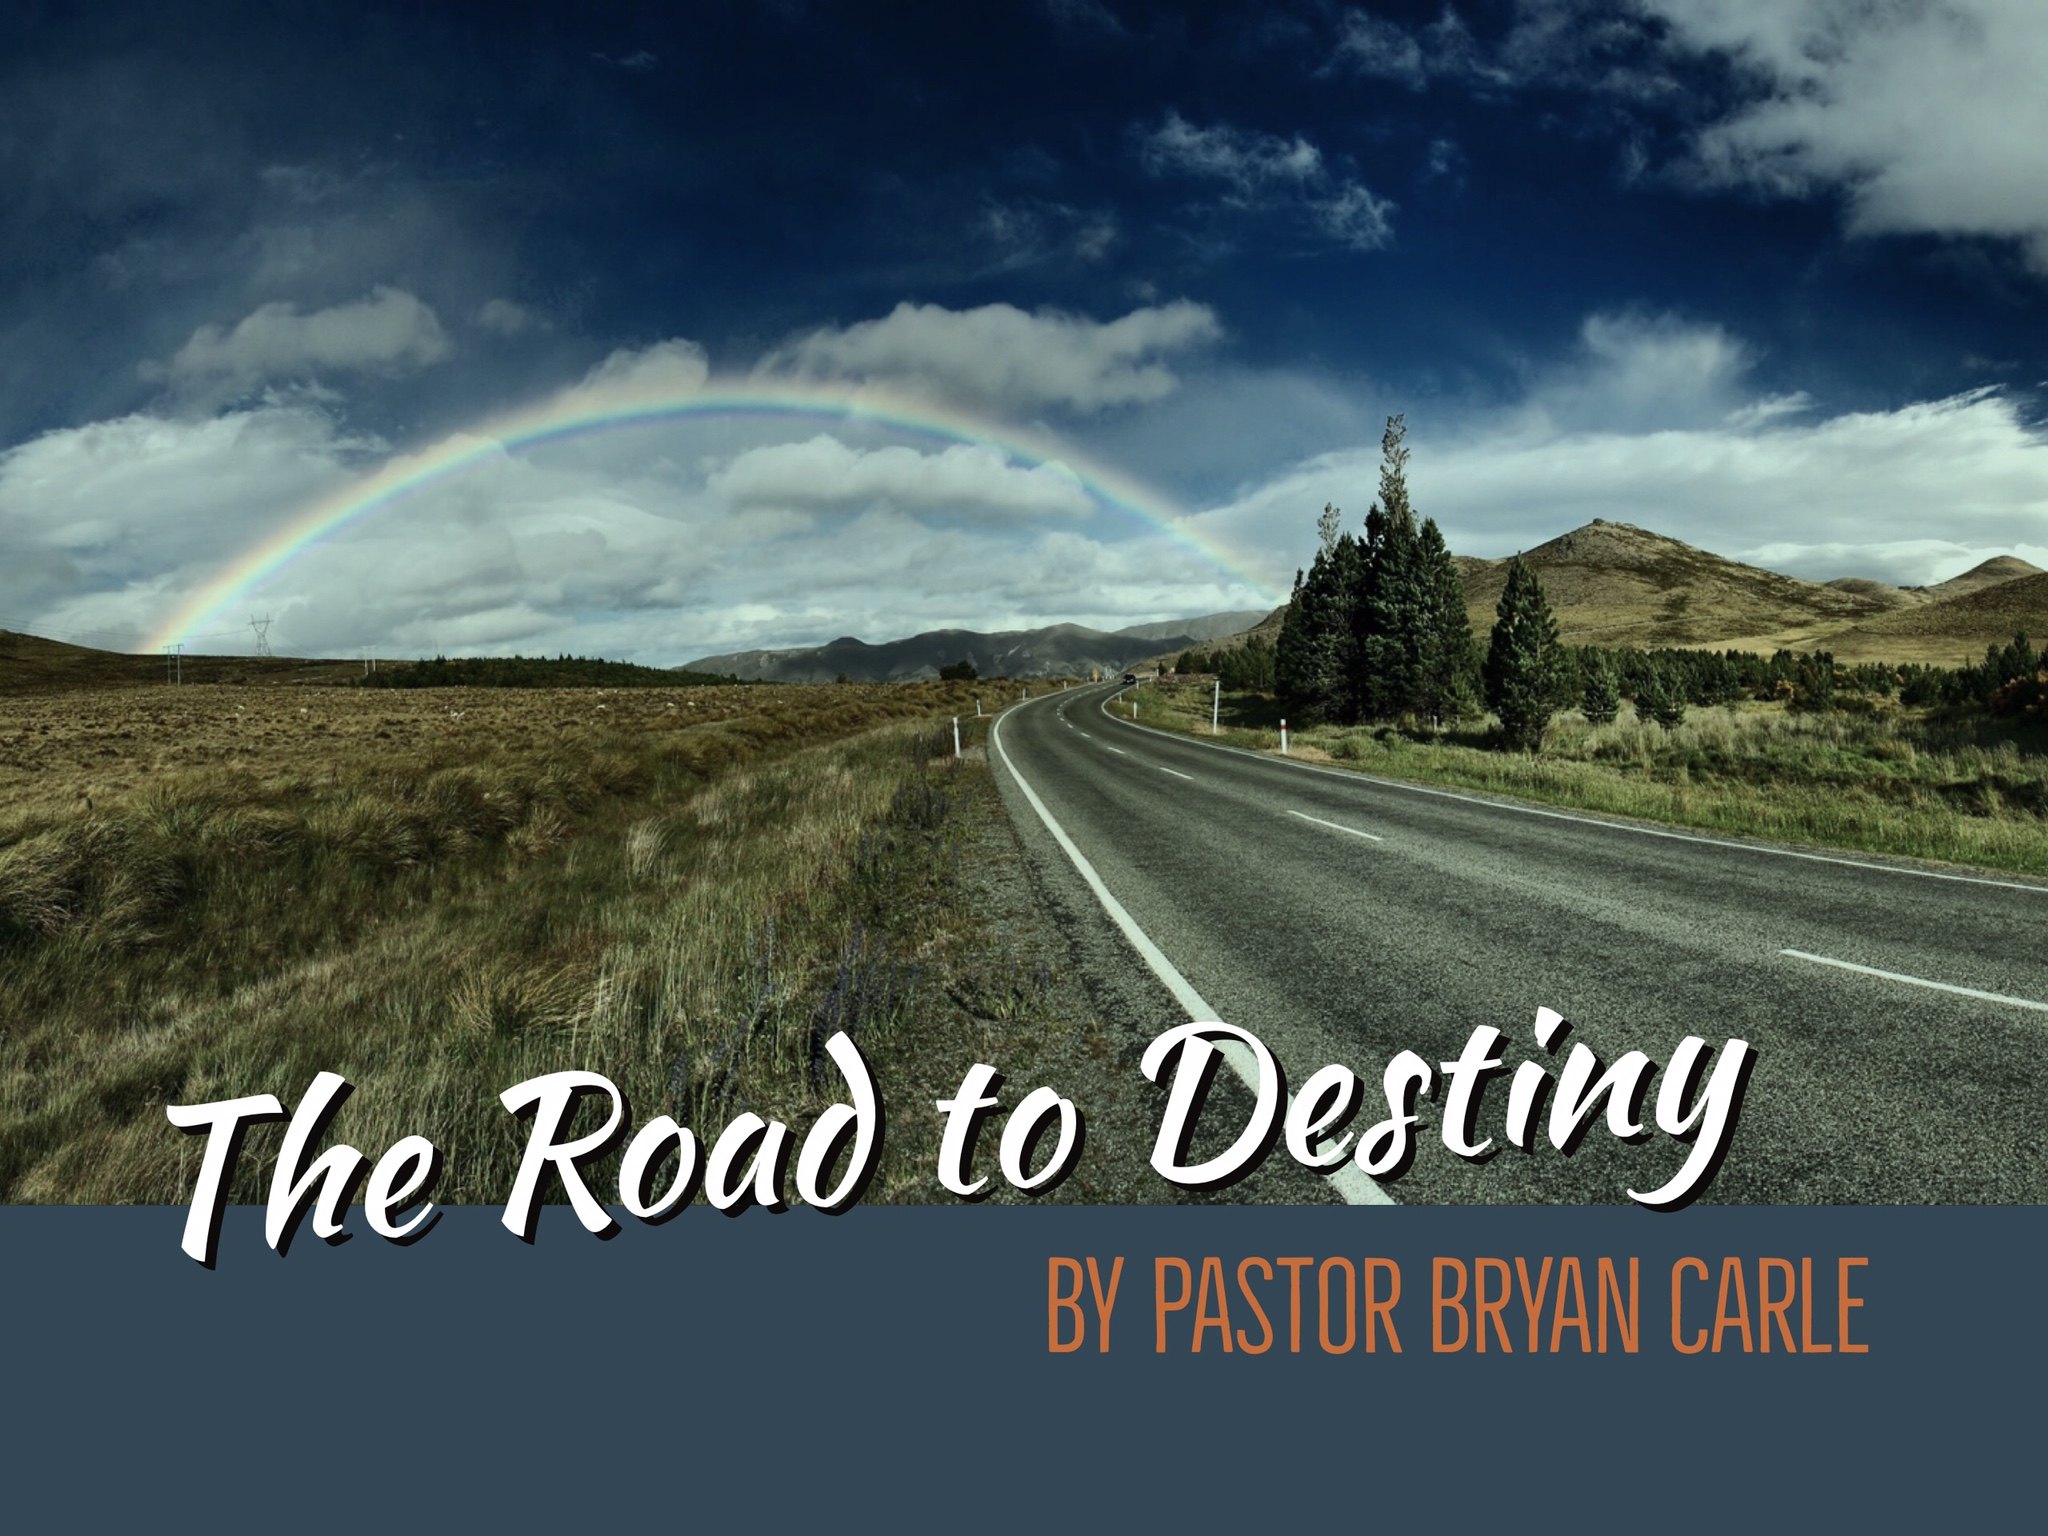 The Road to Destiny by Pastor Bryan Carle